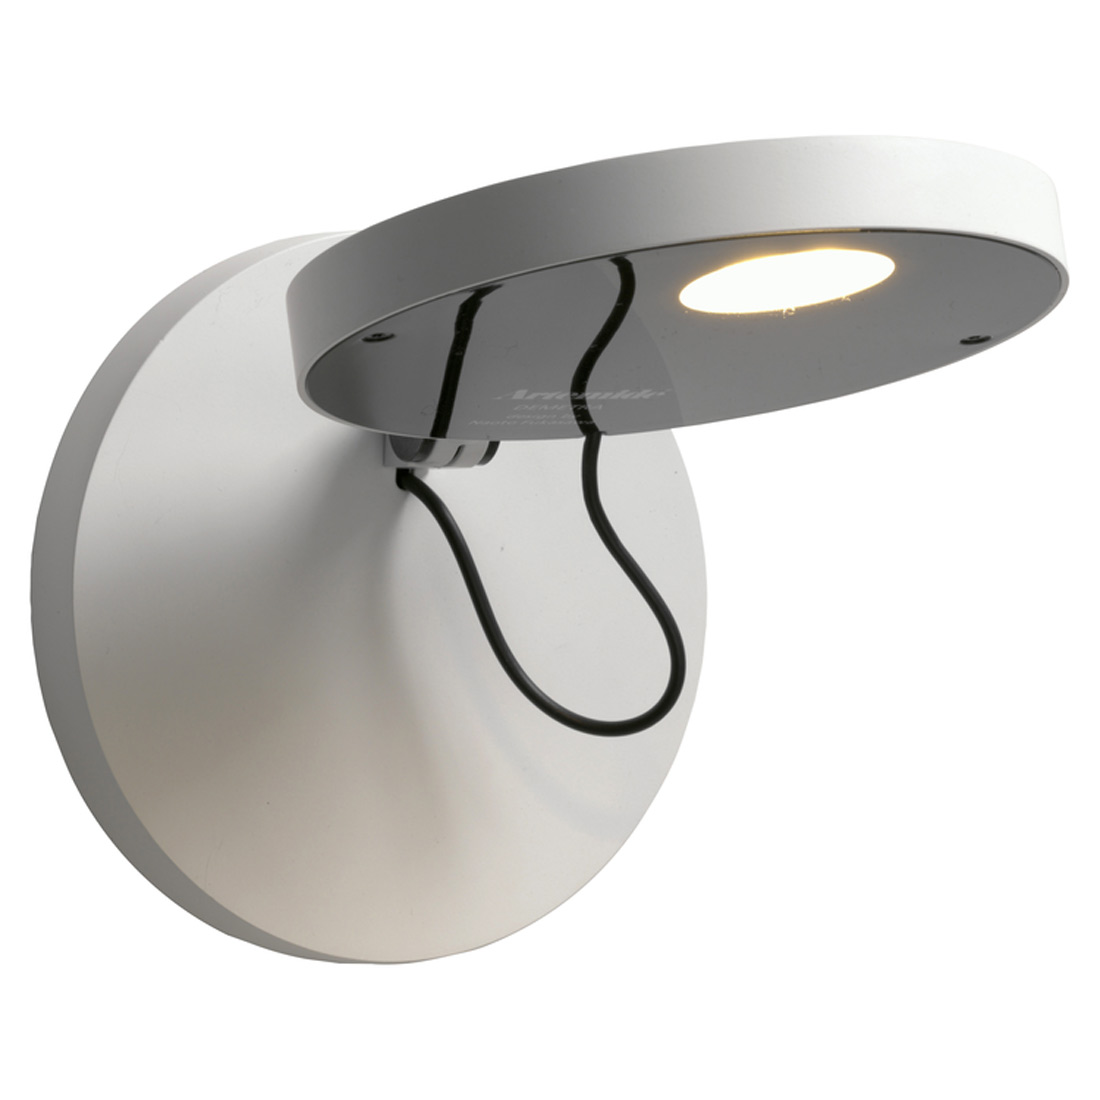 Demetra Faretto Wall Lamp without switch - Titanium